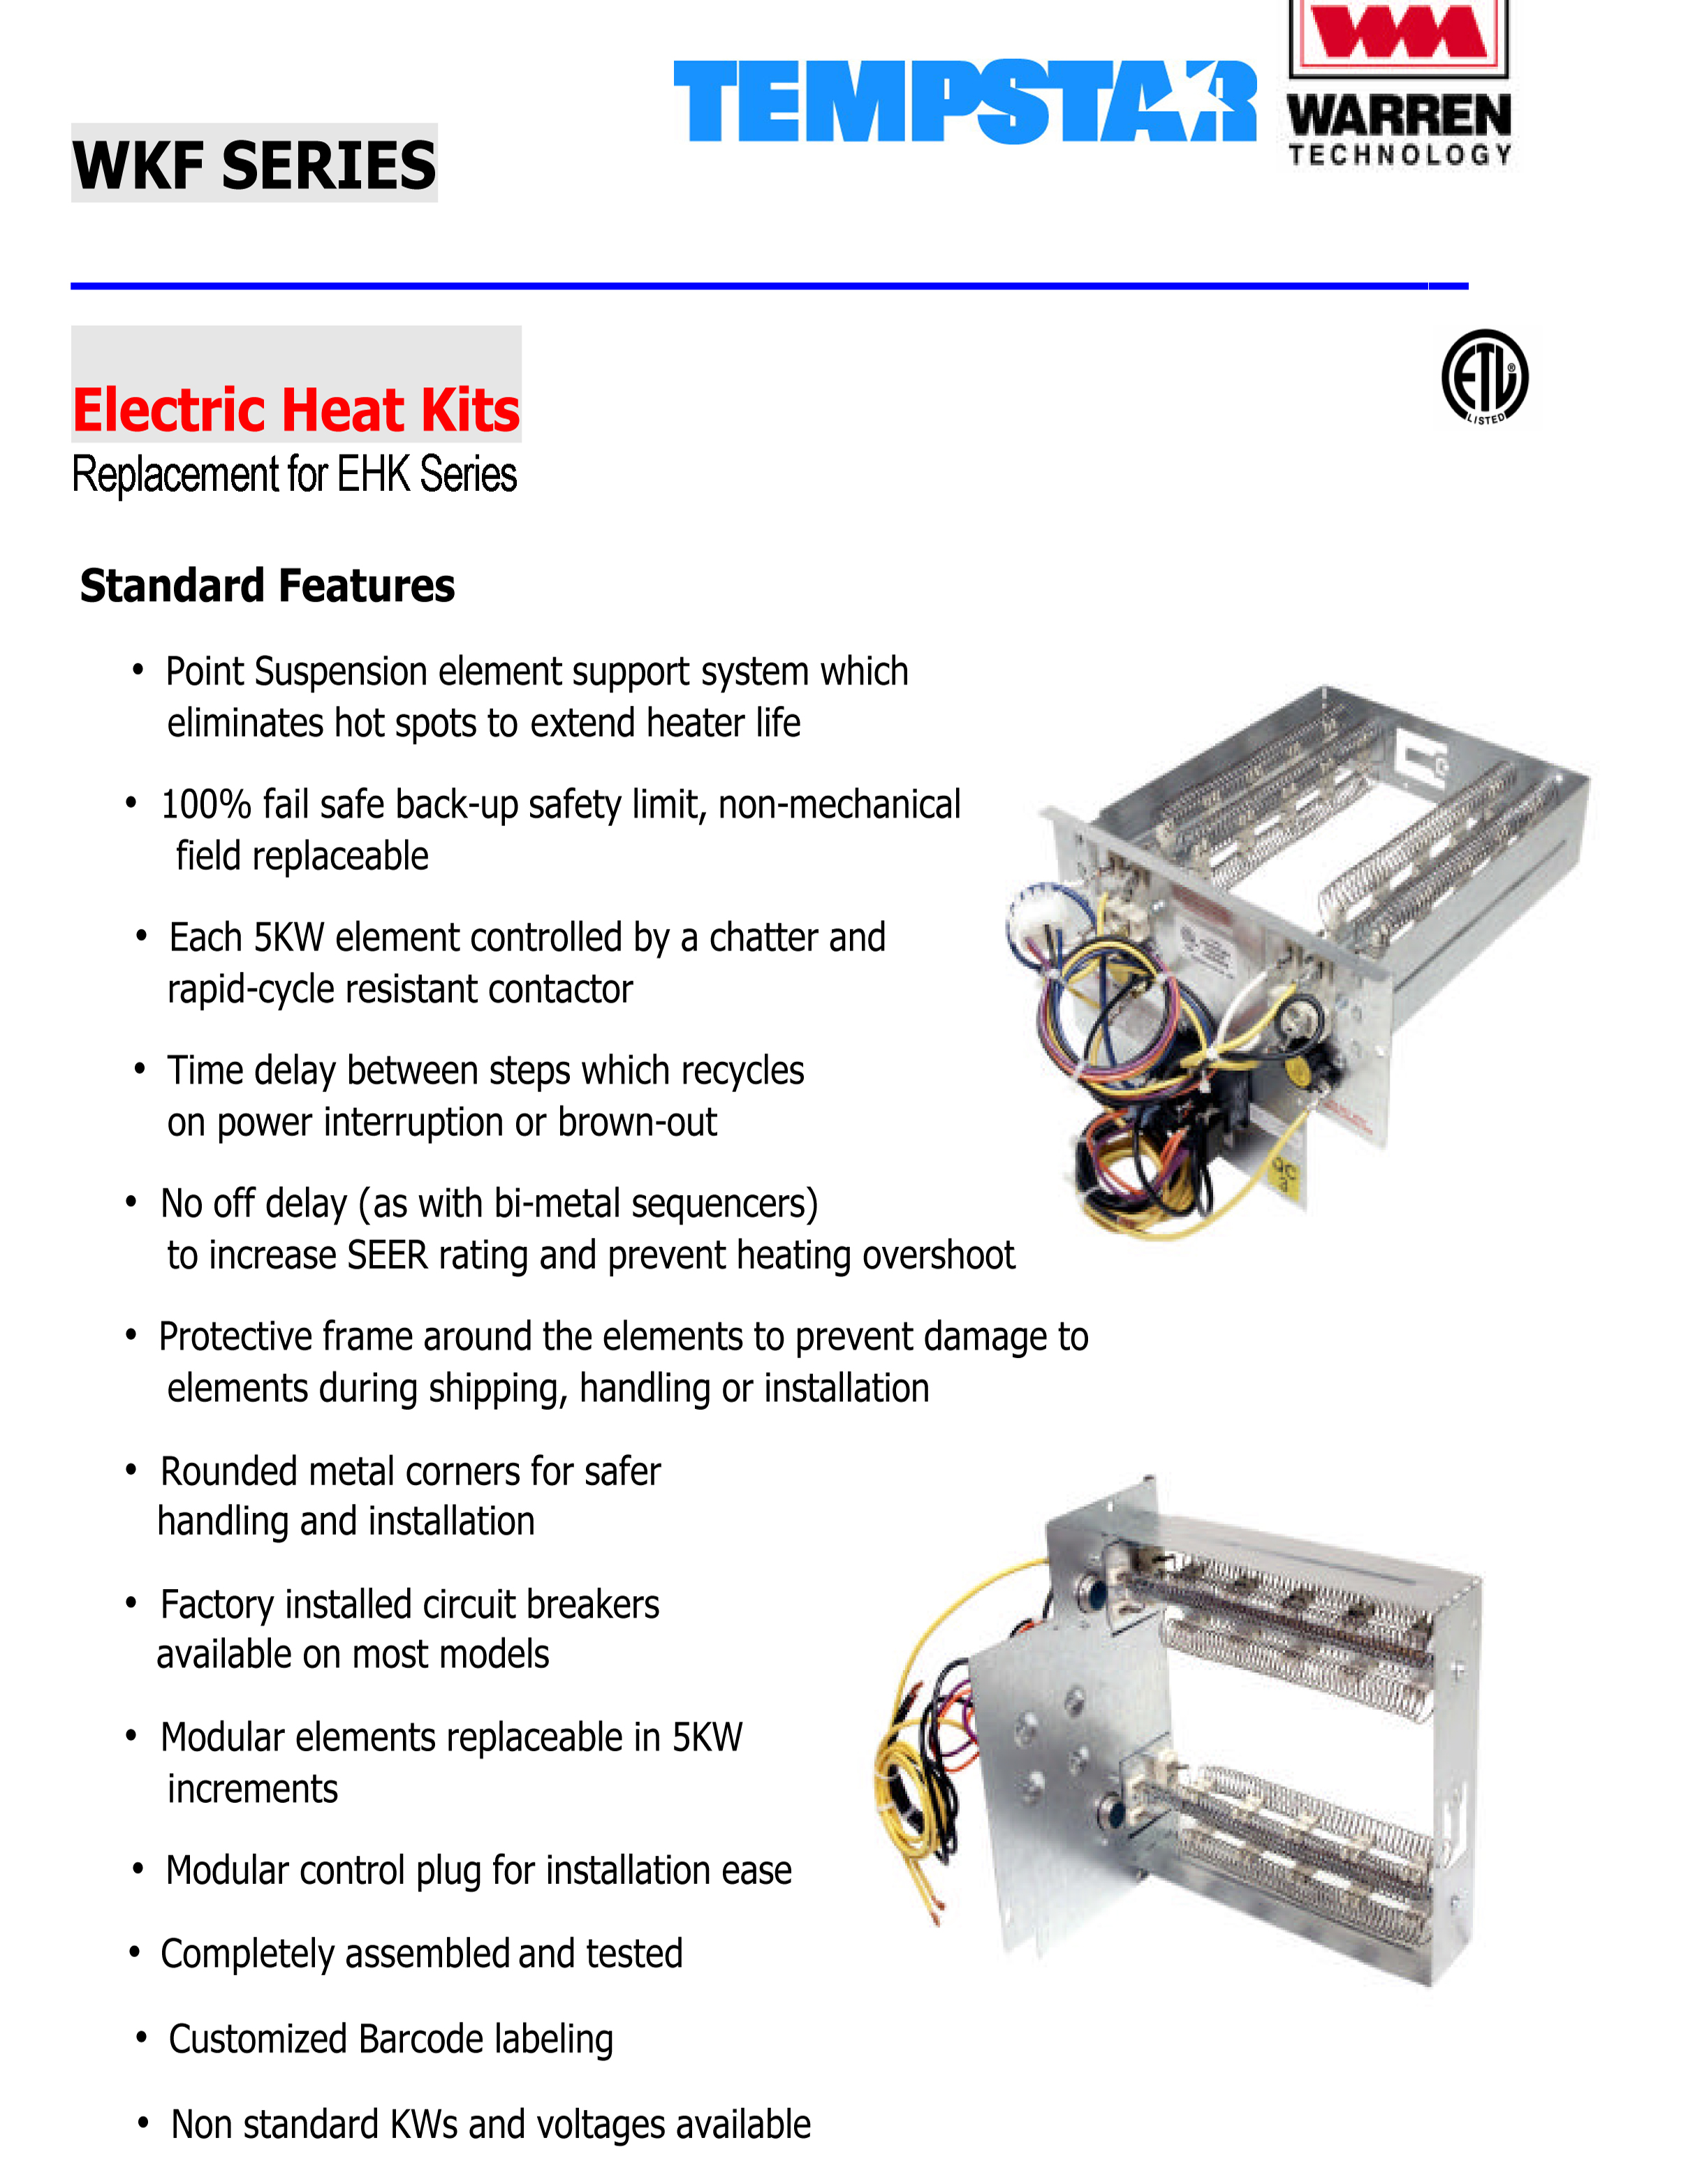 heil 5000 wiring diagram how to do a plot 10 kw heat strip for tempstar air handlers eb p x v wa